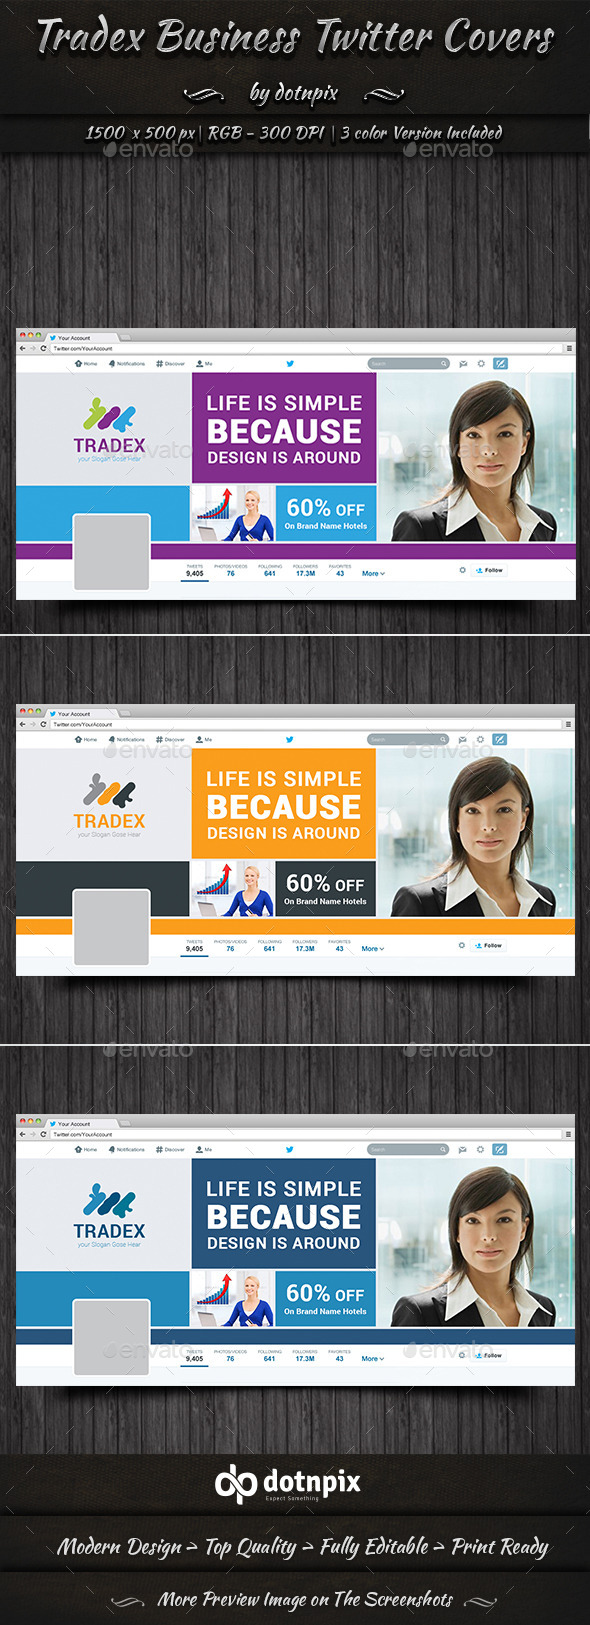 GraphicRiver Tradex Business Twitter Cover 10688323